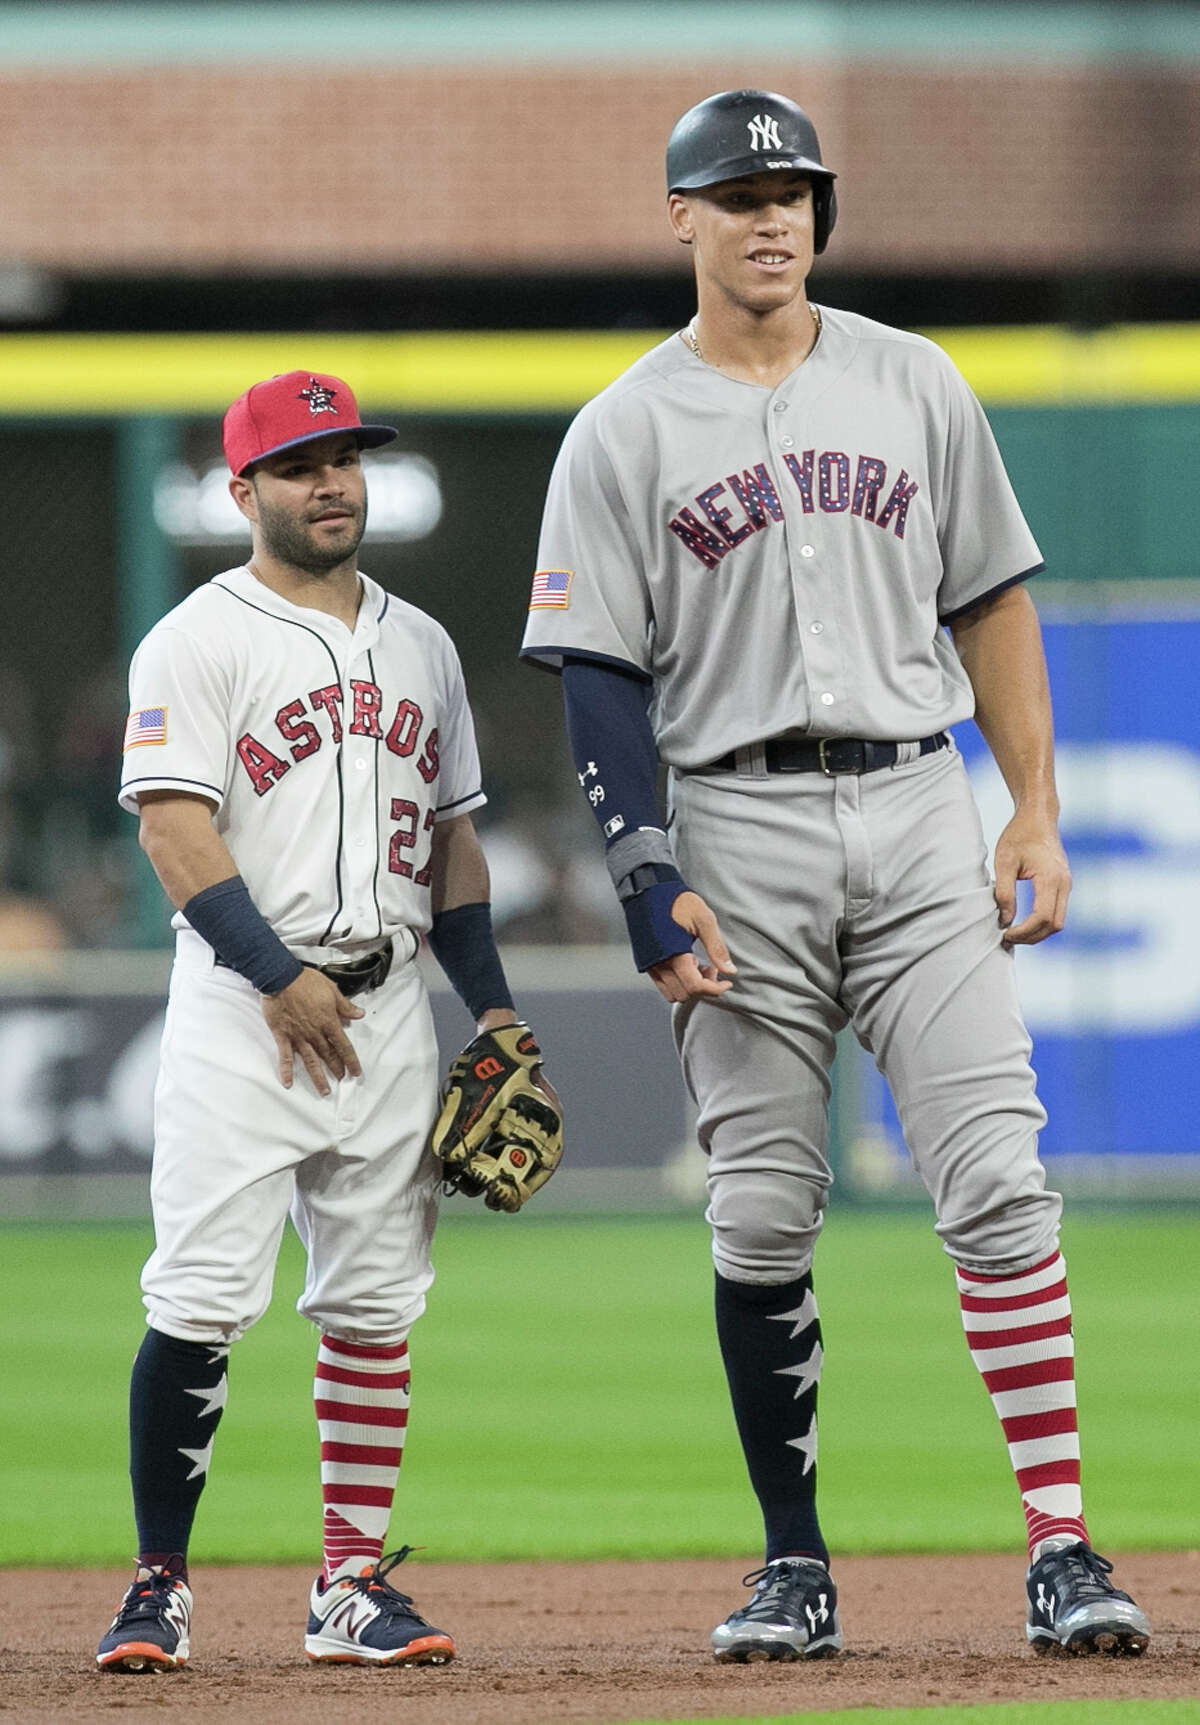 Astros second baseman Jose Altuve and Yankees slugger Aaron Judge were able to size each other up after New York's slugging rookie doubled in a July game at Minute Maid Park.